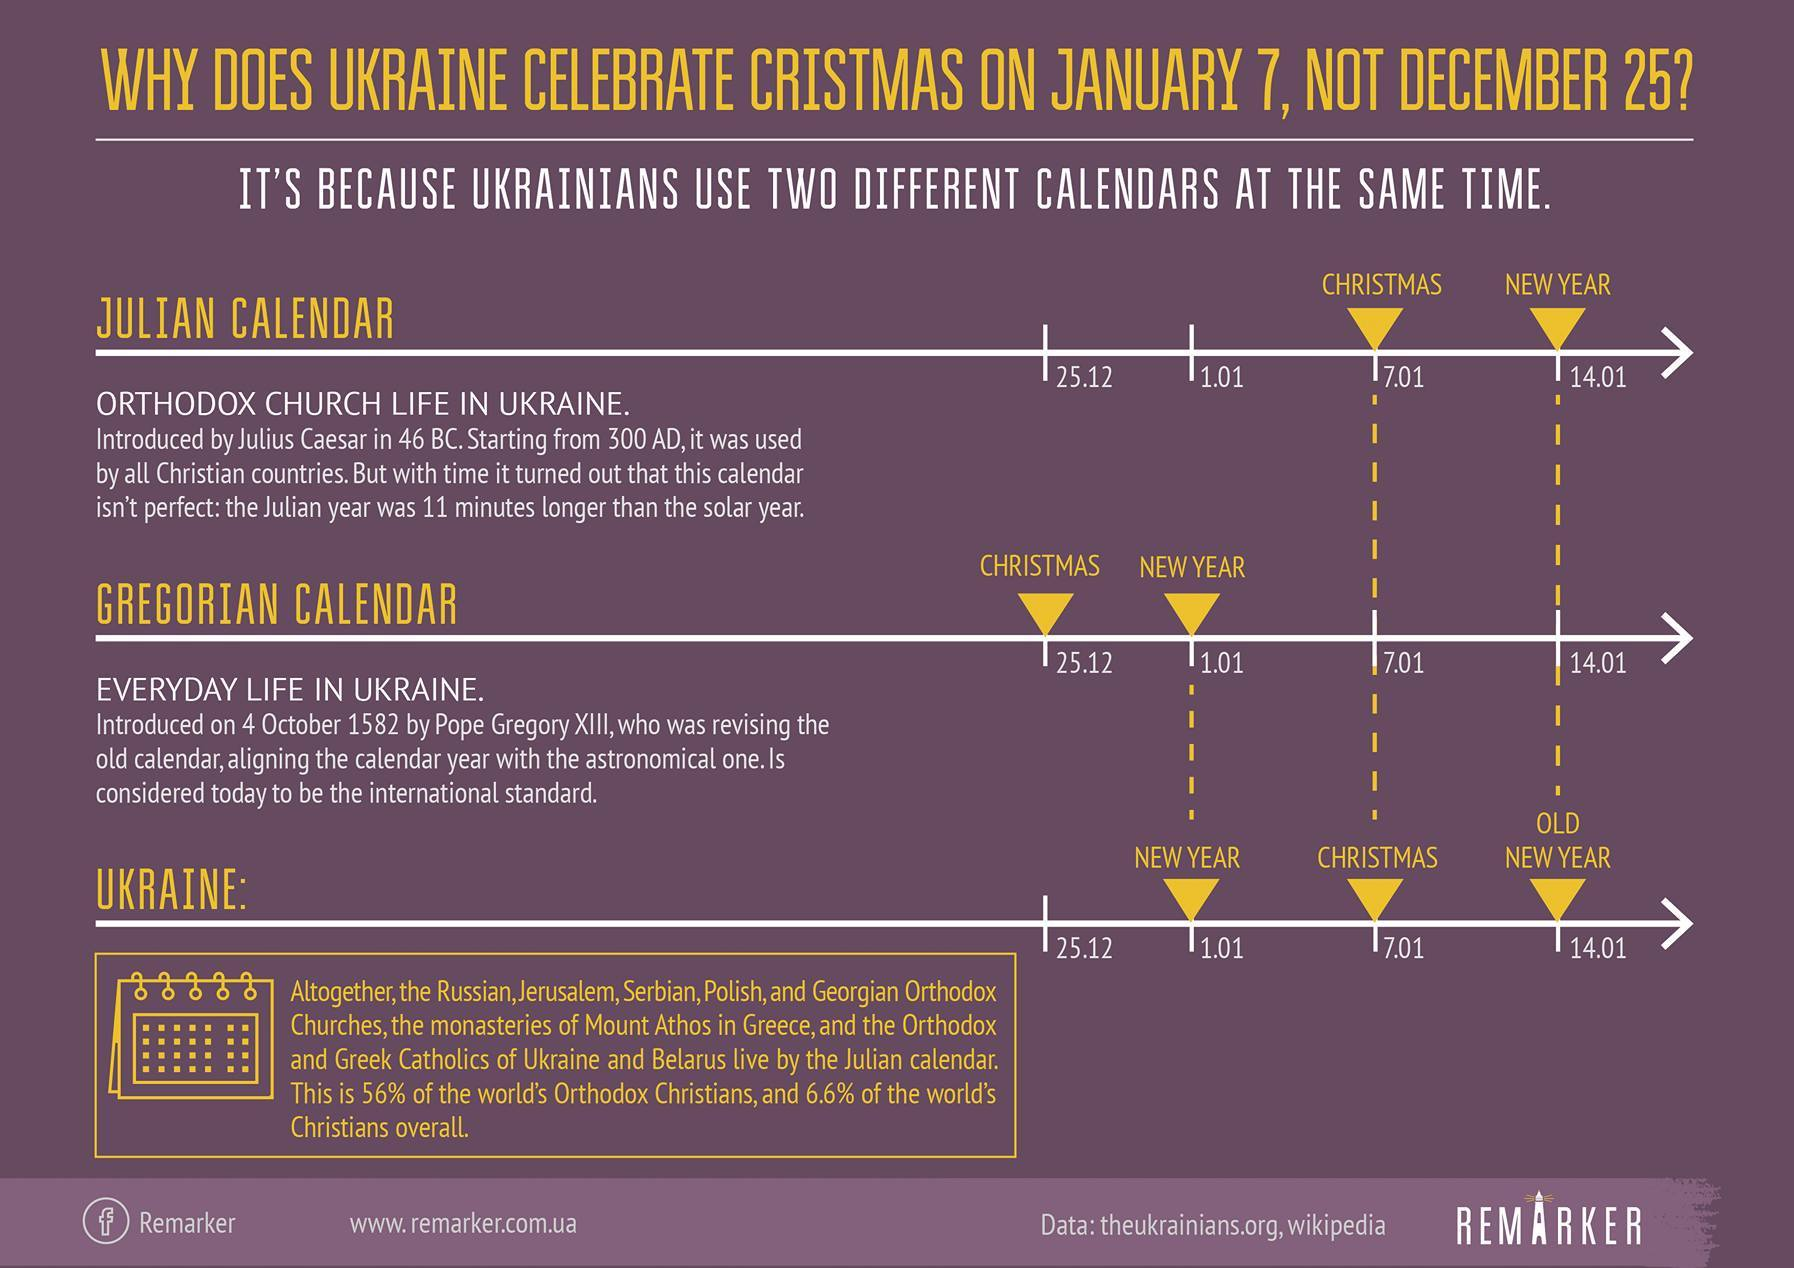 Why does Ukraine celebrate Christmas on January 7, not December 25 ...